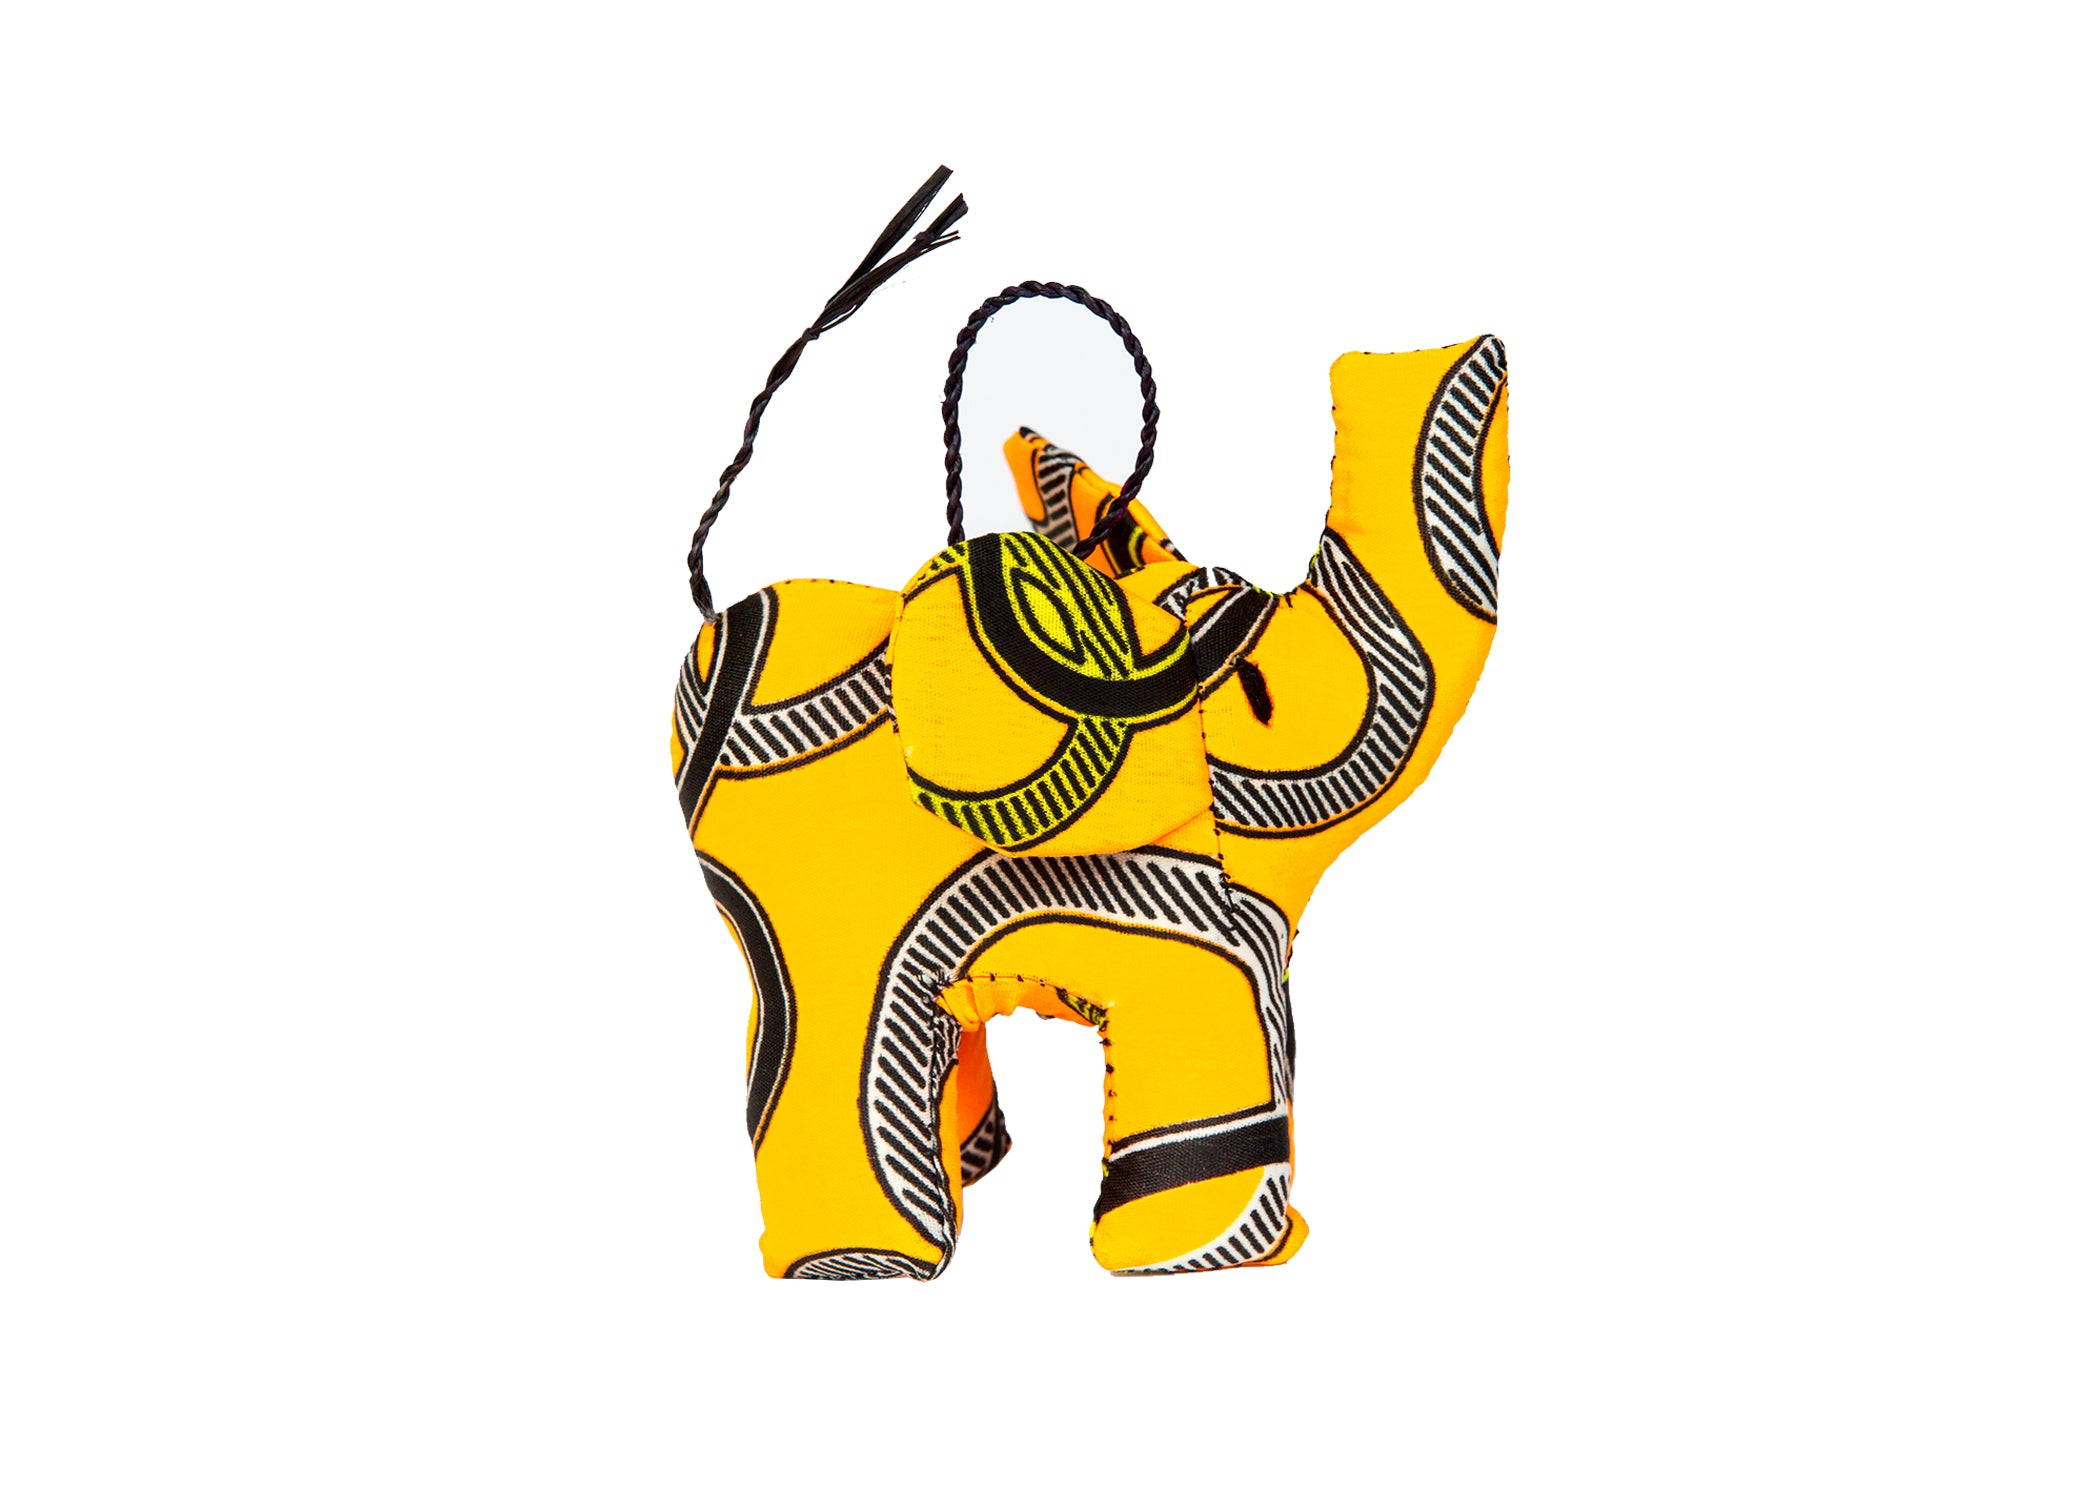 Multi-Colored Elephant Ornament (Assorted Colors) - KAZI - Artisan made high quality home decor and wall art